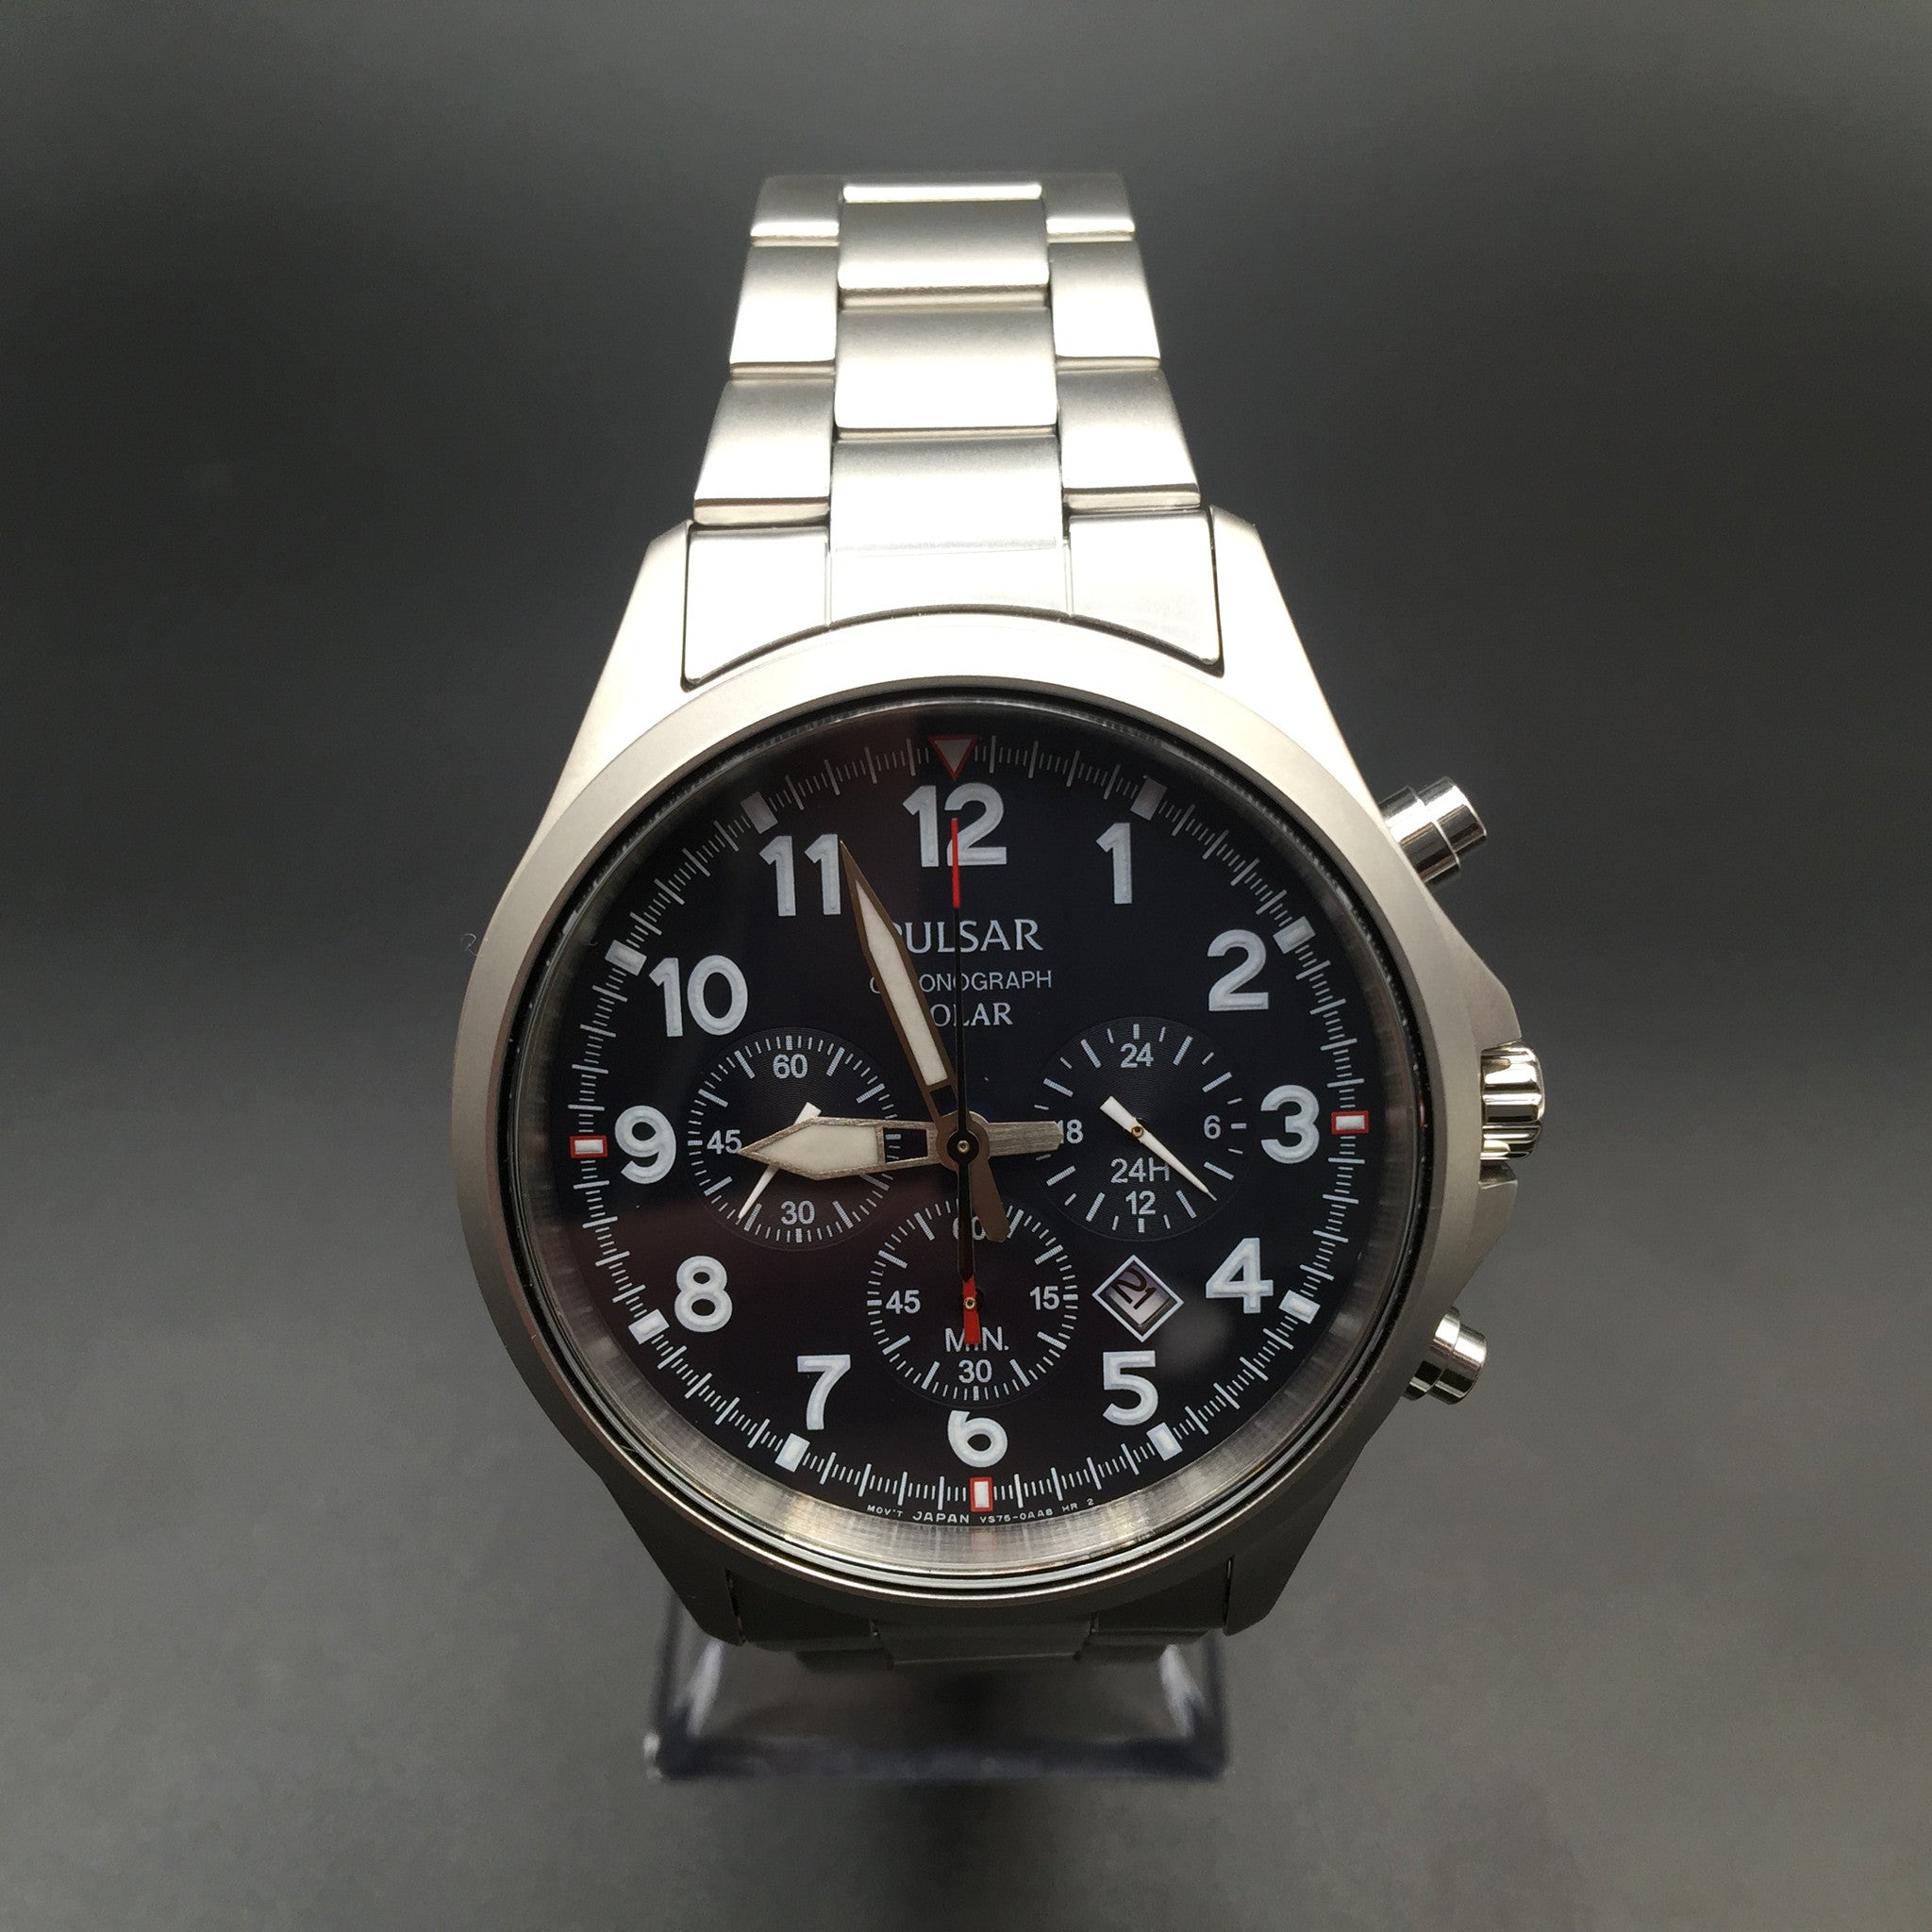 Pulsar Gents Chronograph Stainless Steel Solar Watch PX5001